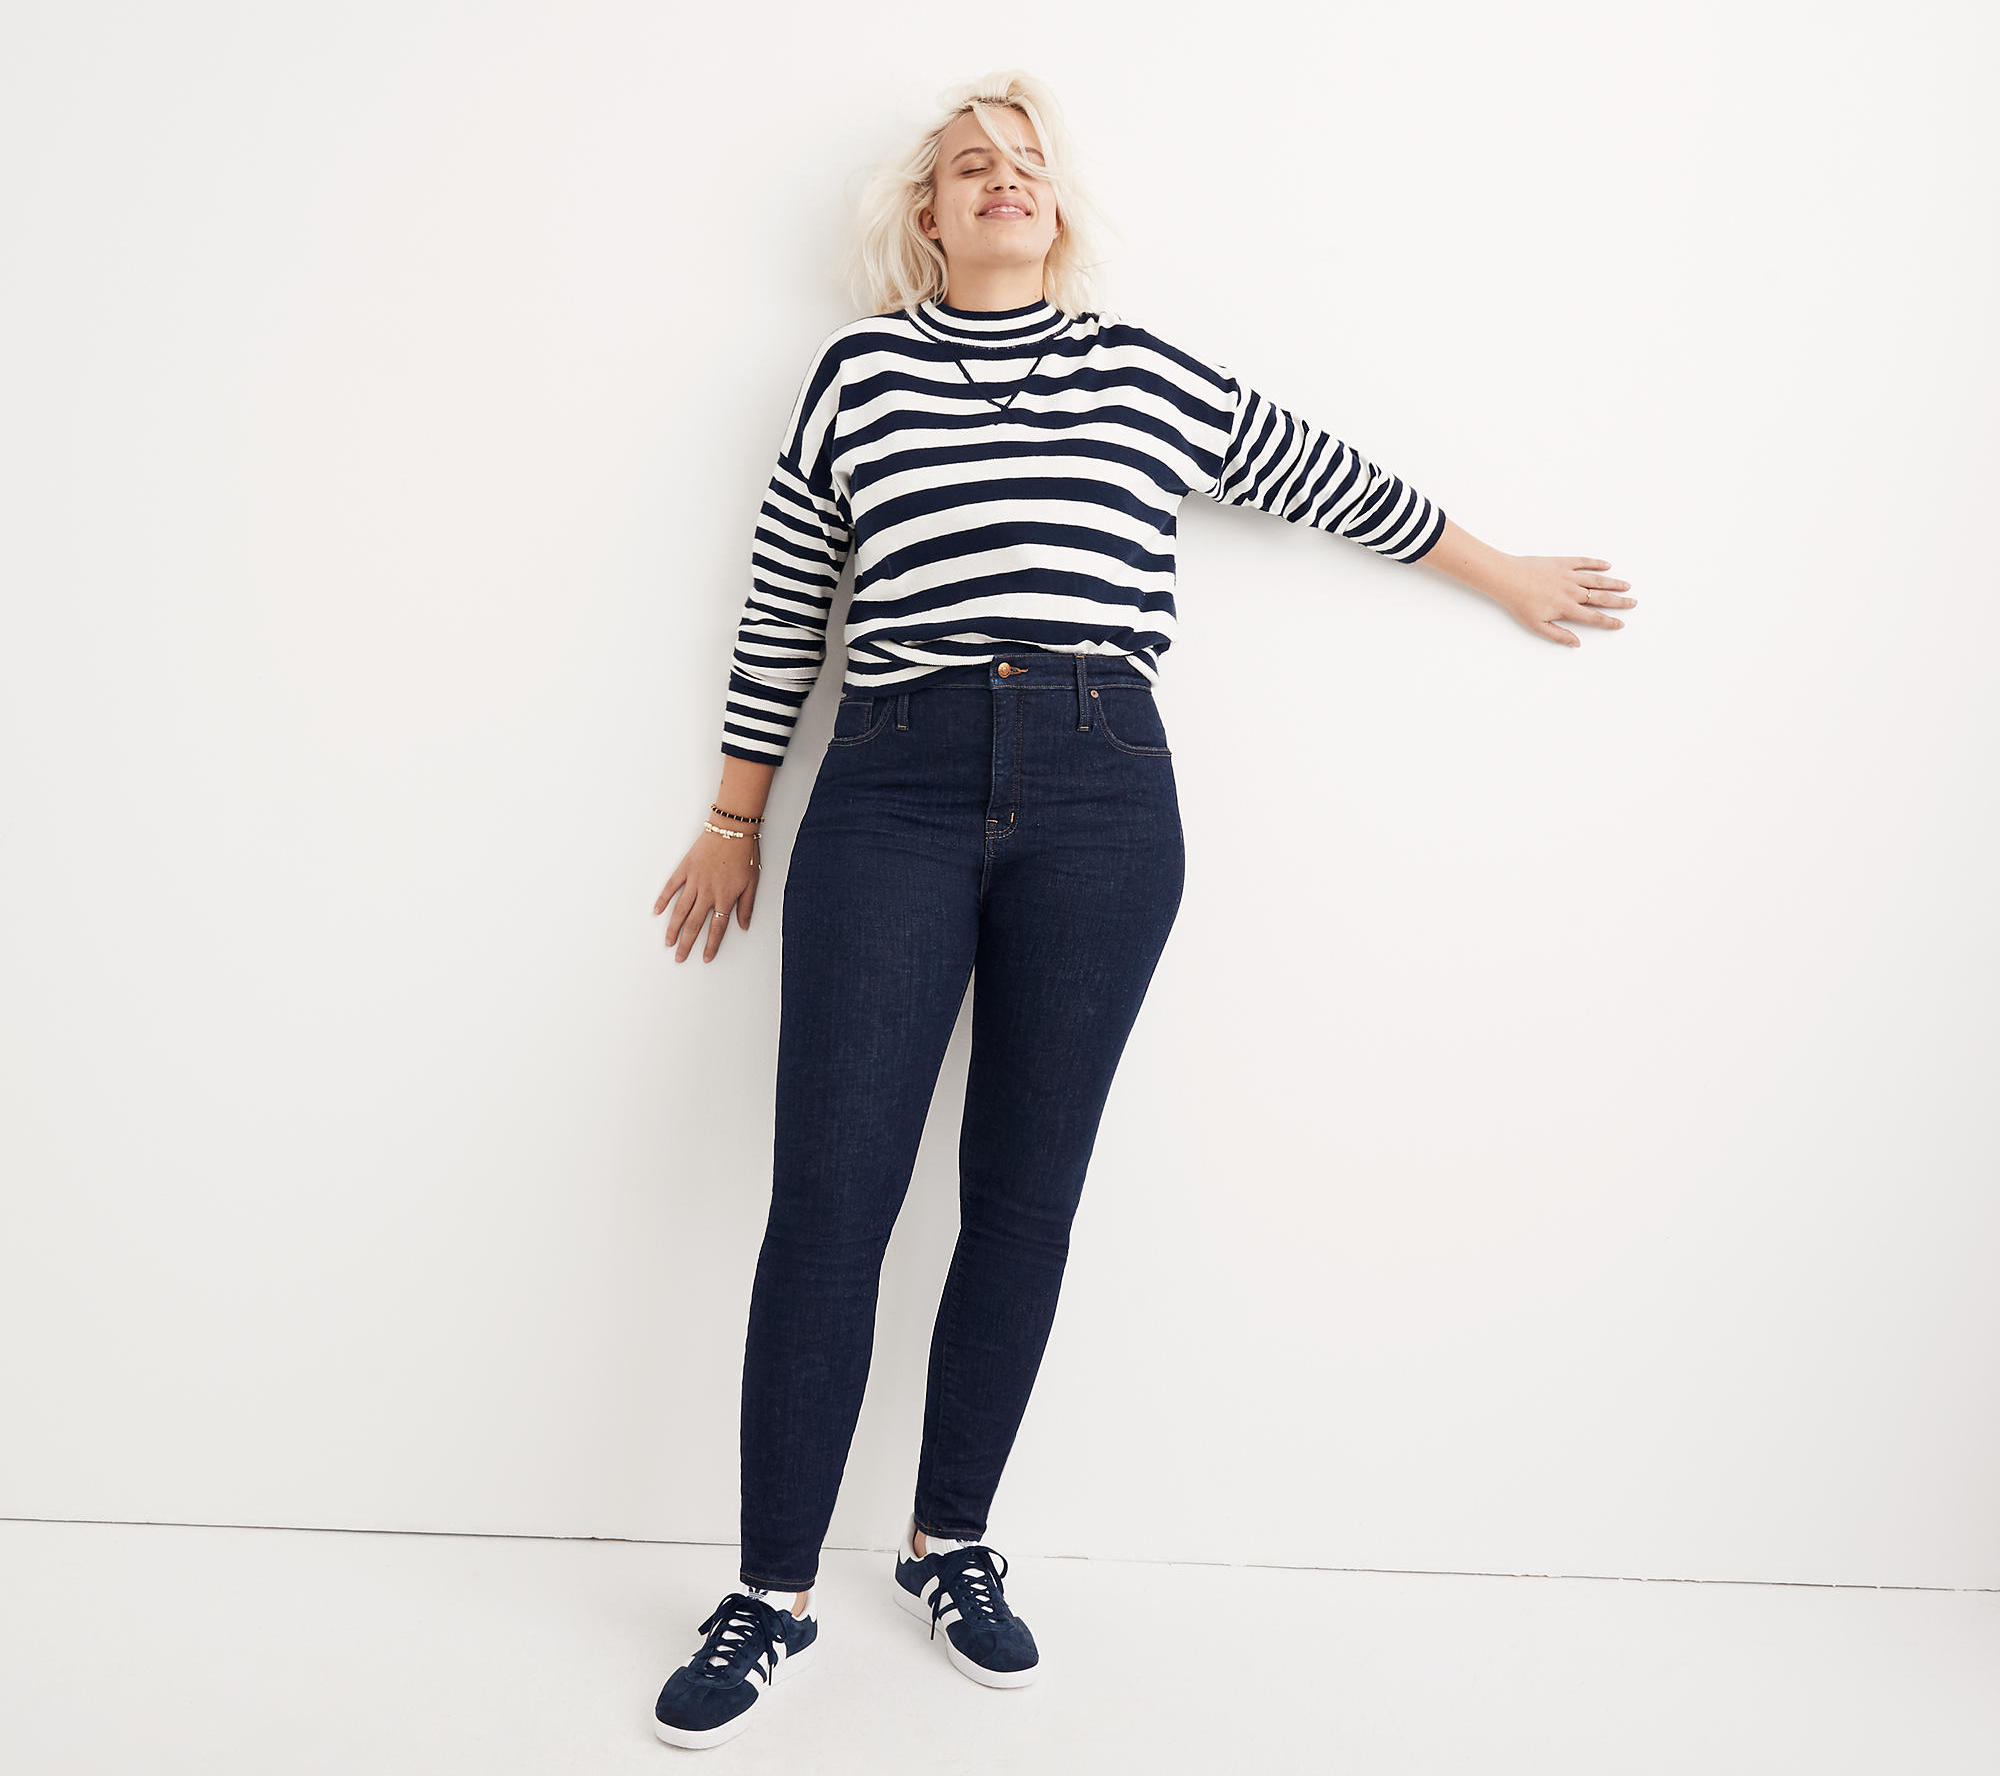 A model wearing Madewell jeans